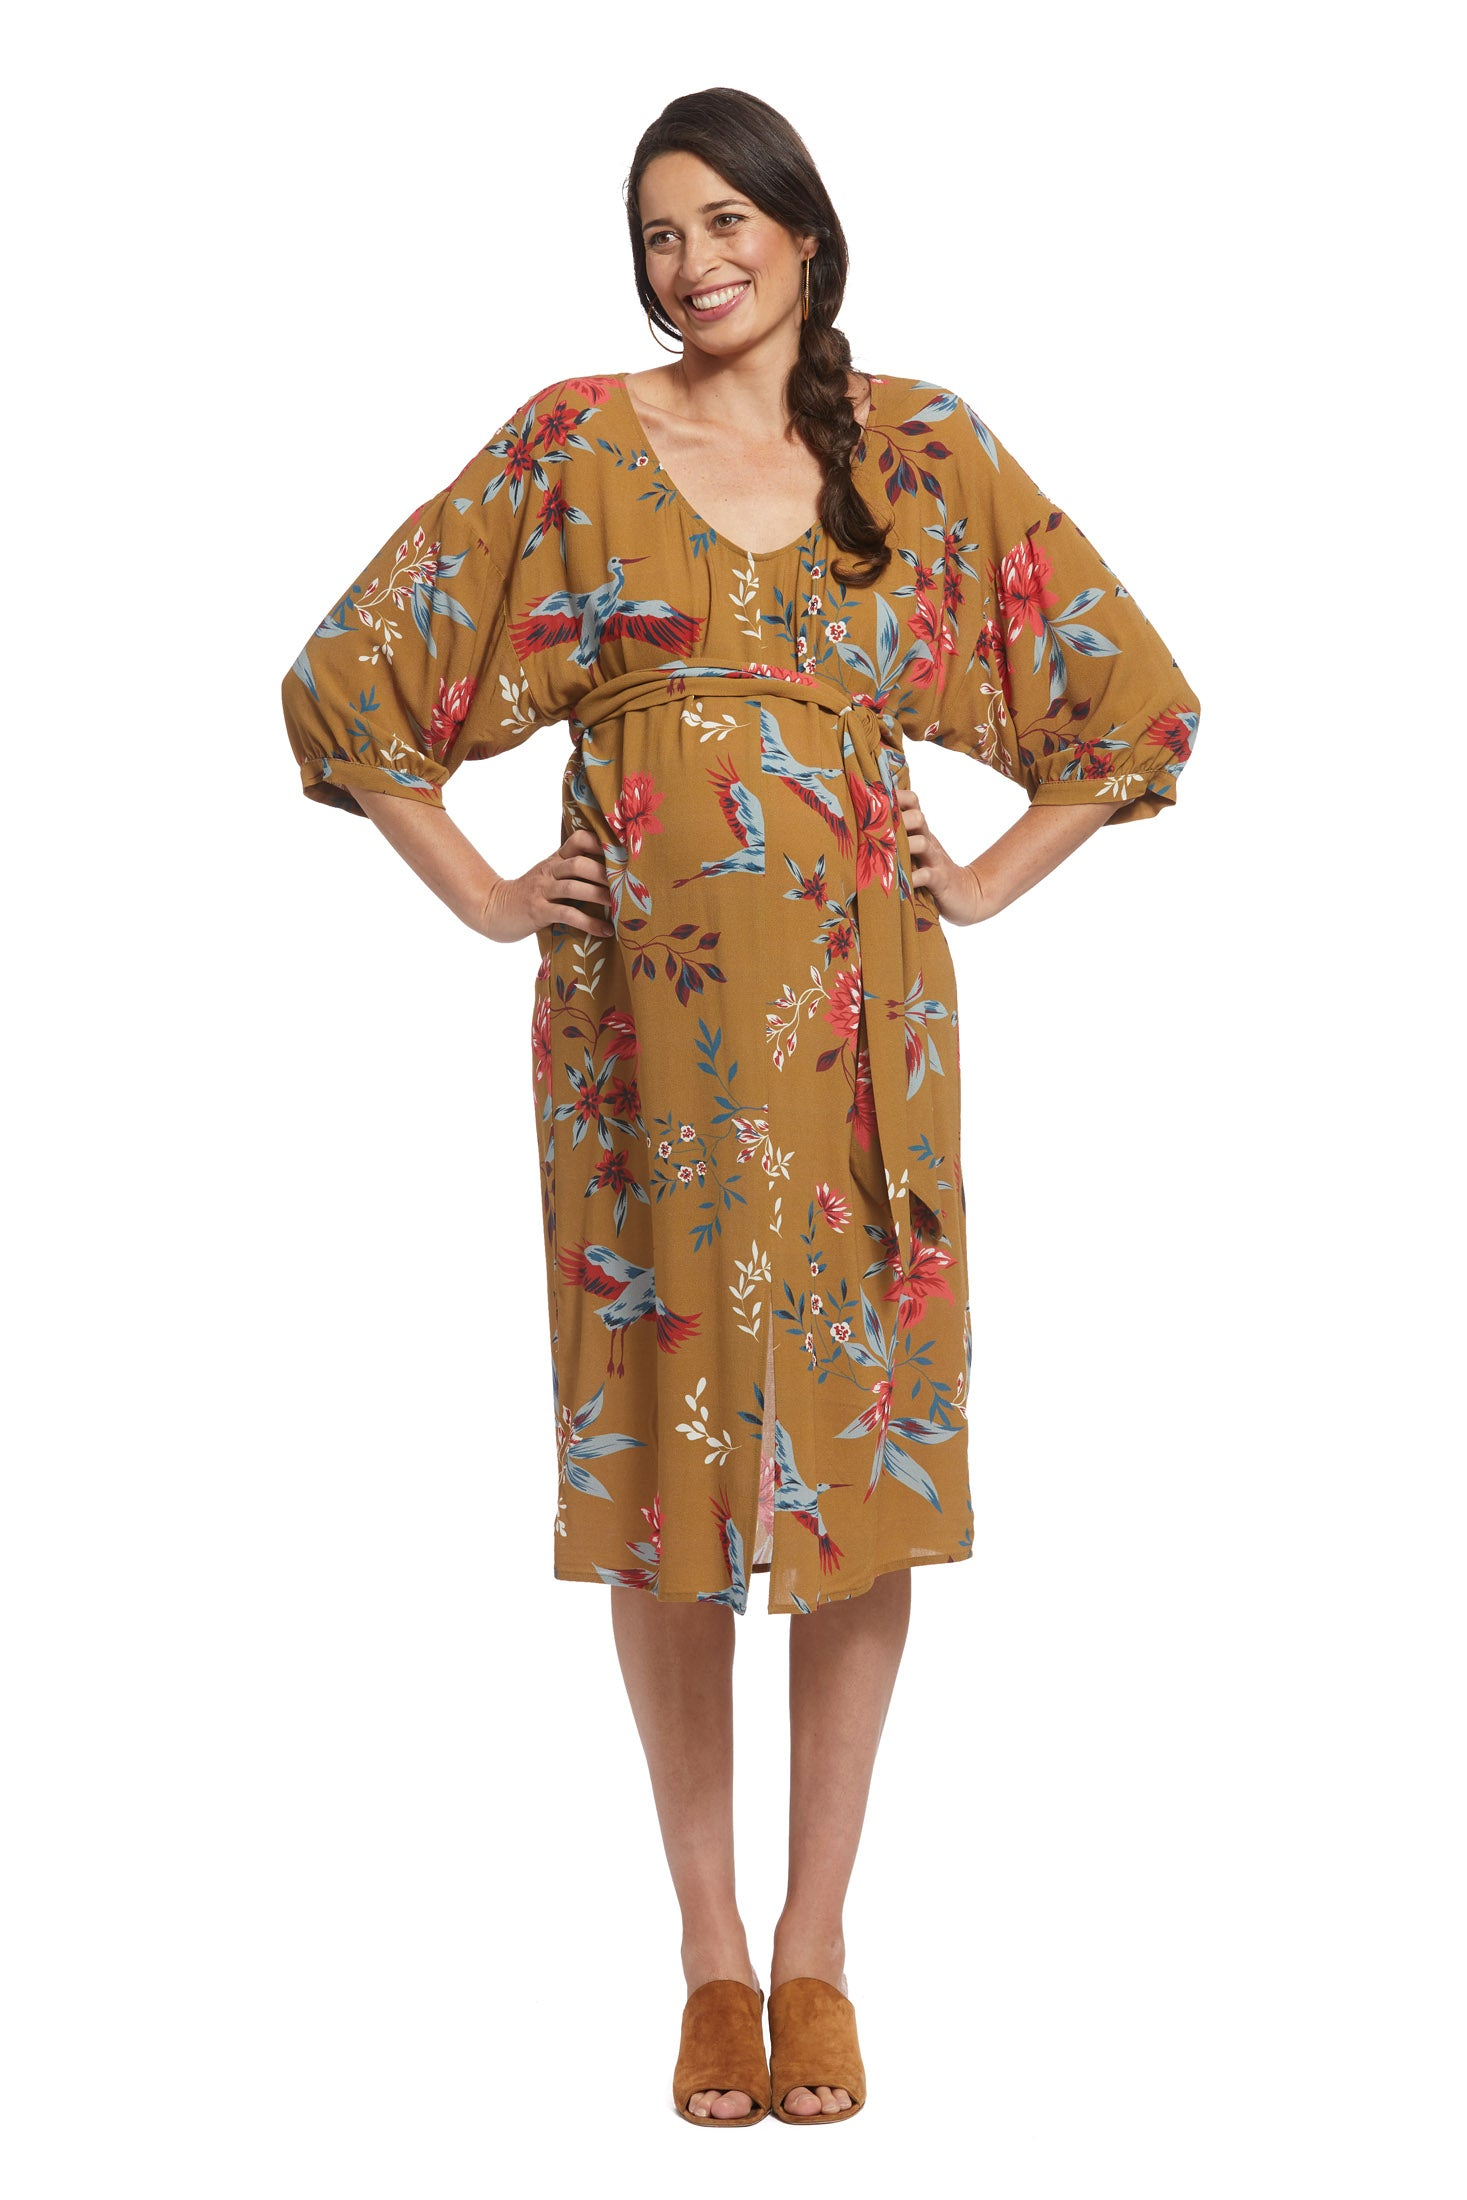 Crepe Rayon Reversible Ryan Dress - Avian, Maternity